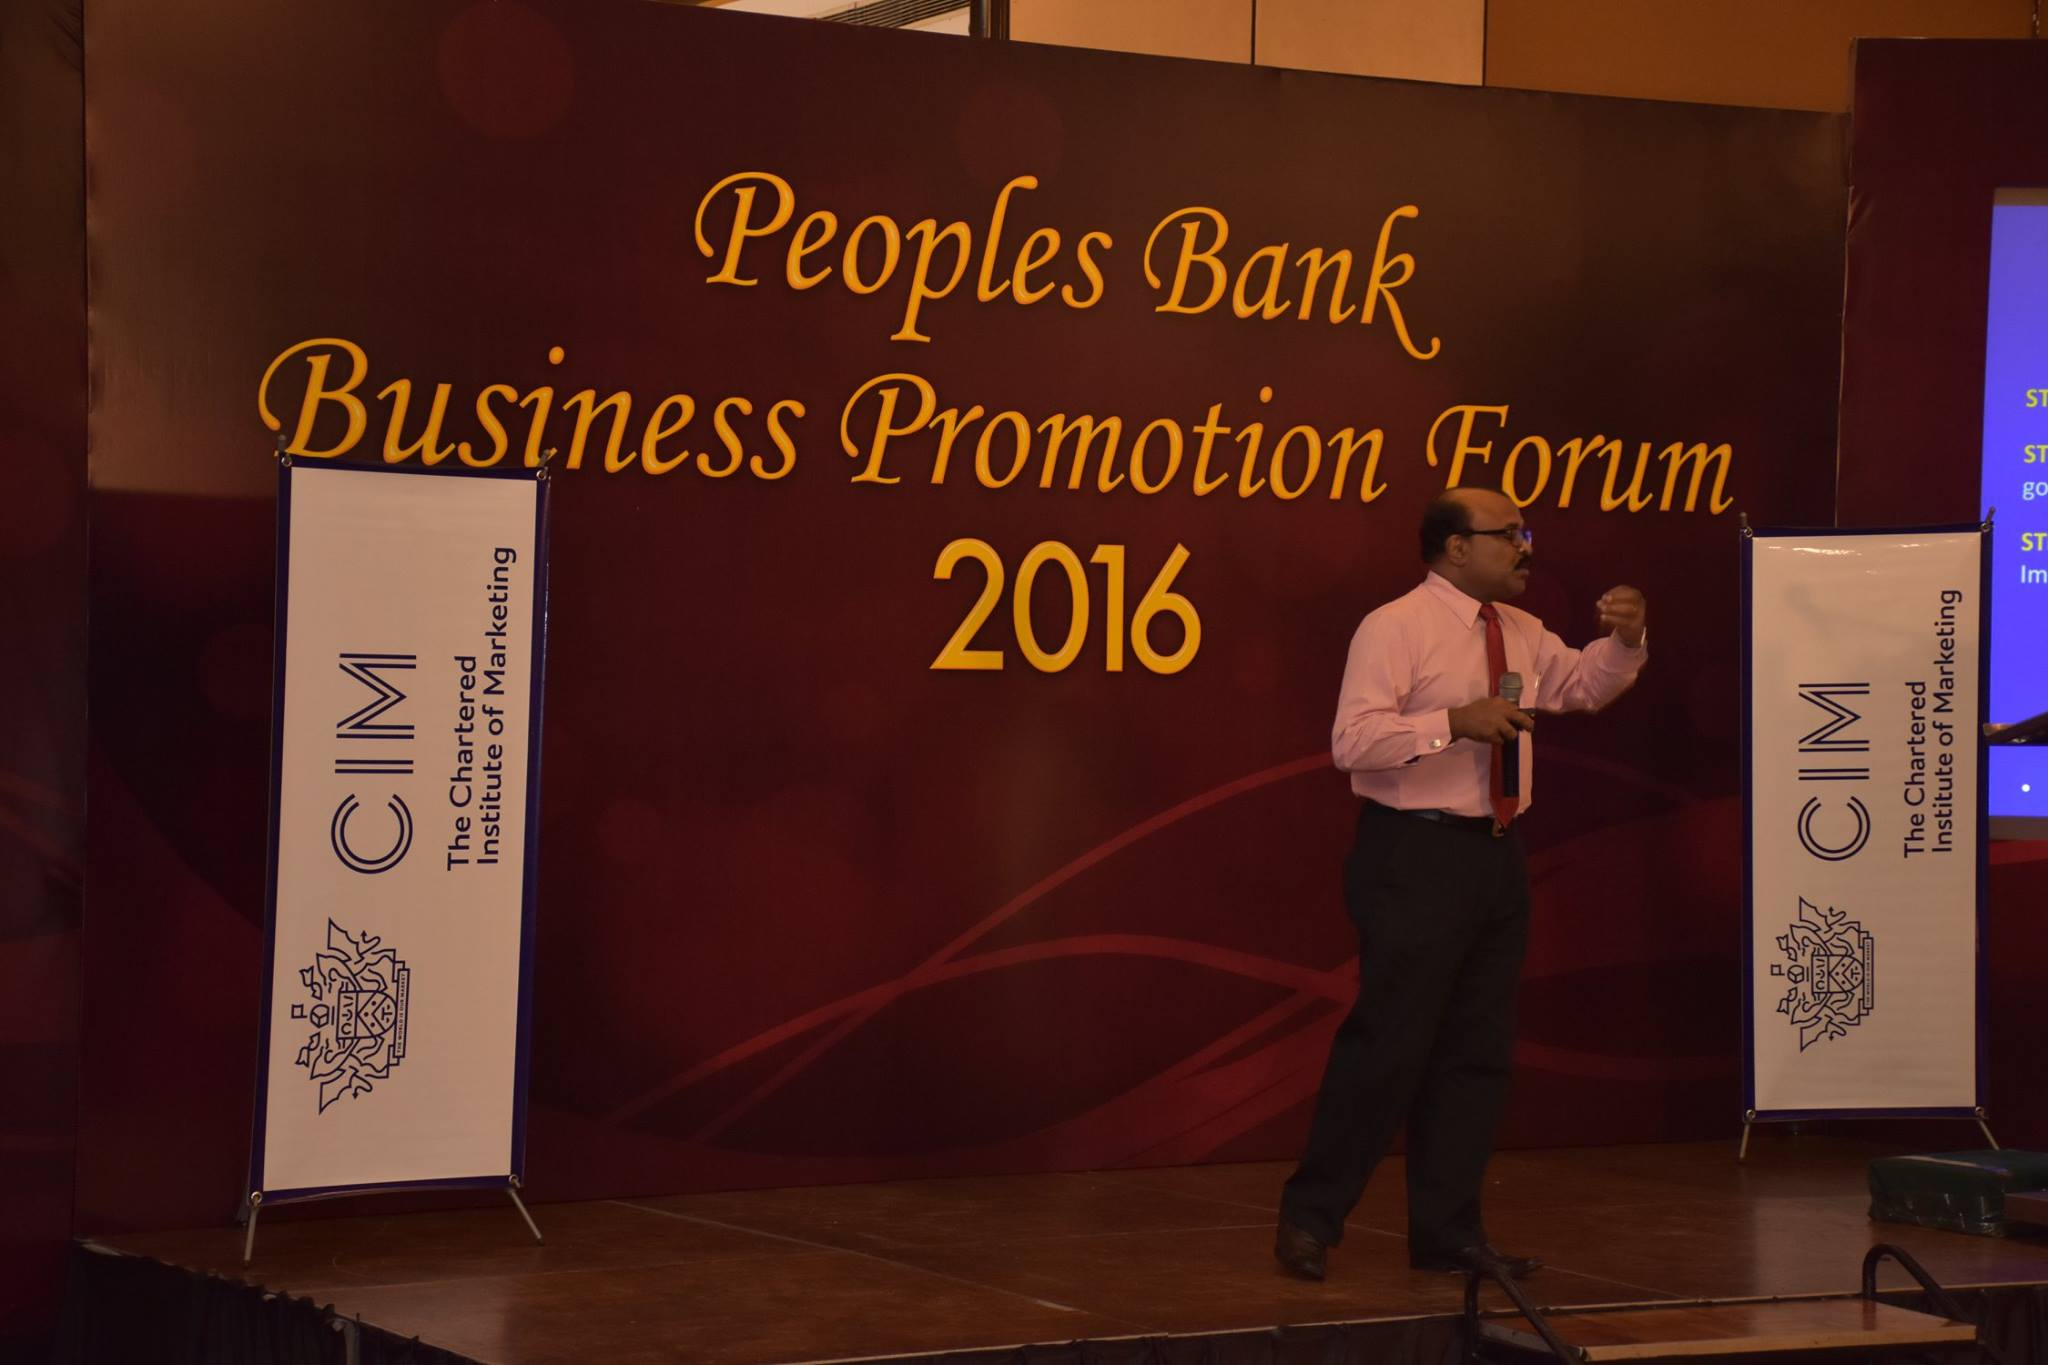 CIM educates corporates on how marketing adds value to organisations